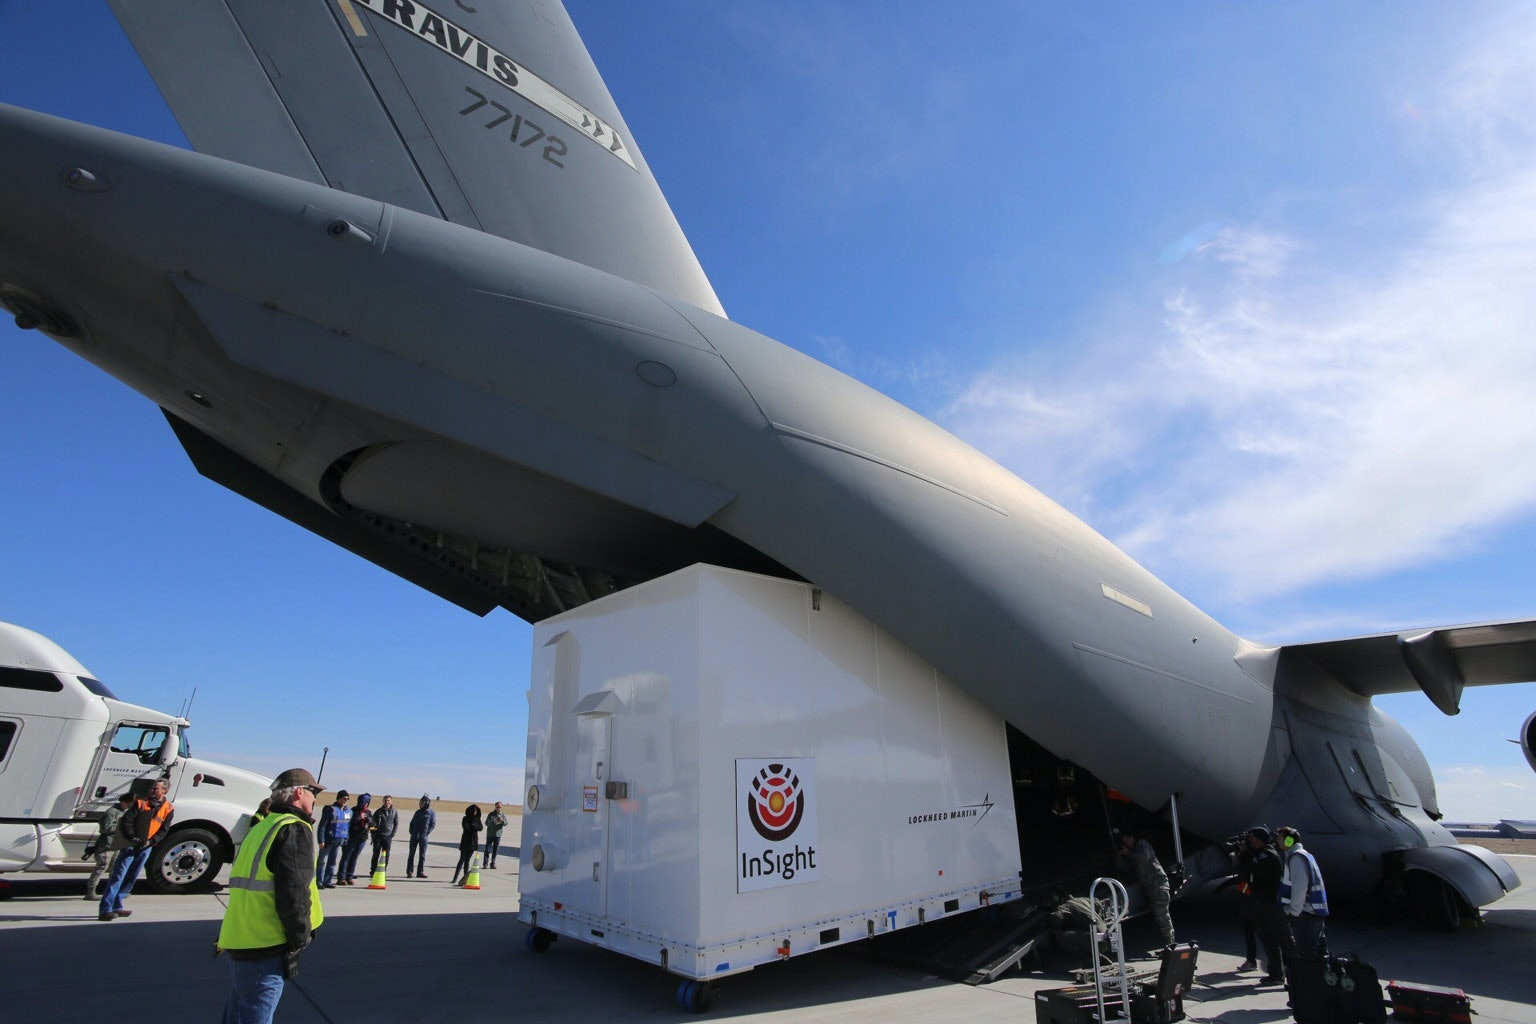 Personnel supporting NASA's InSight mission to Mars load the crated InSight spacecraft into a C-17 cargo aircraft at Buckley Air Force Base, Denver, for shipment to Vandenberg Air Force Base, California.